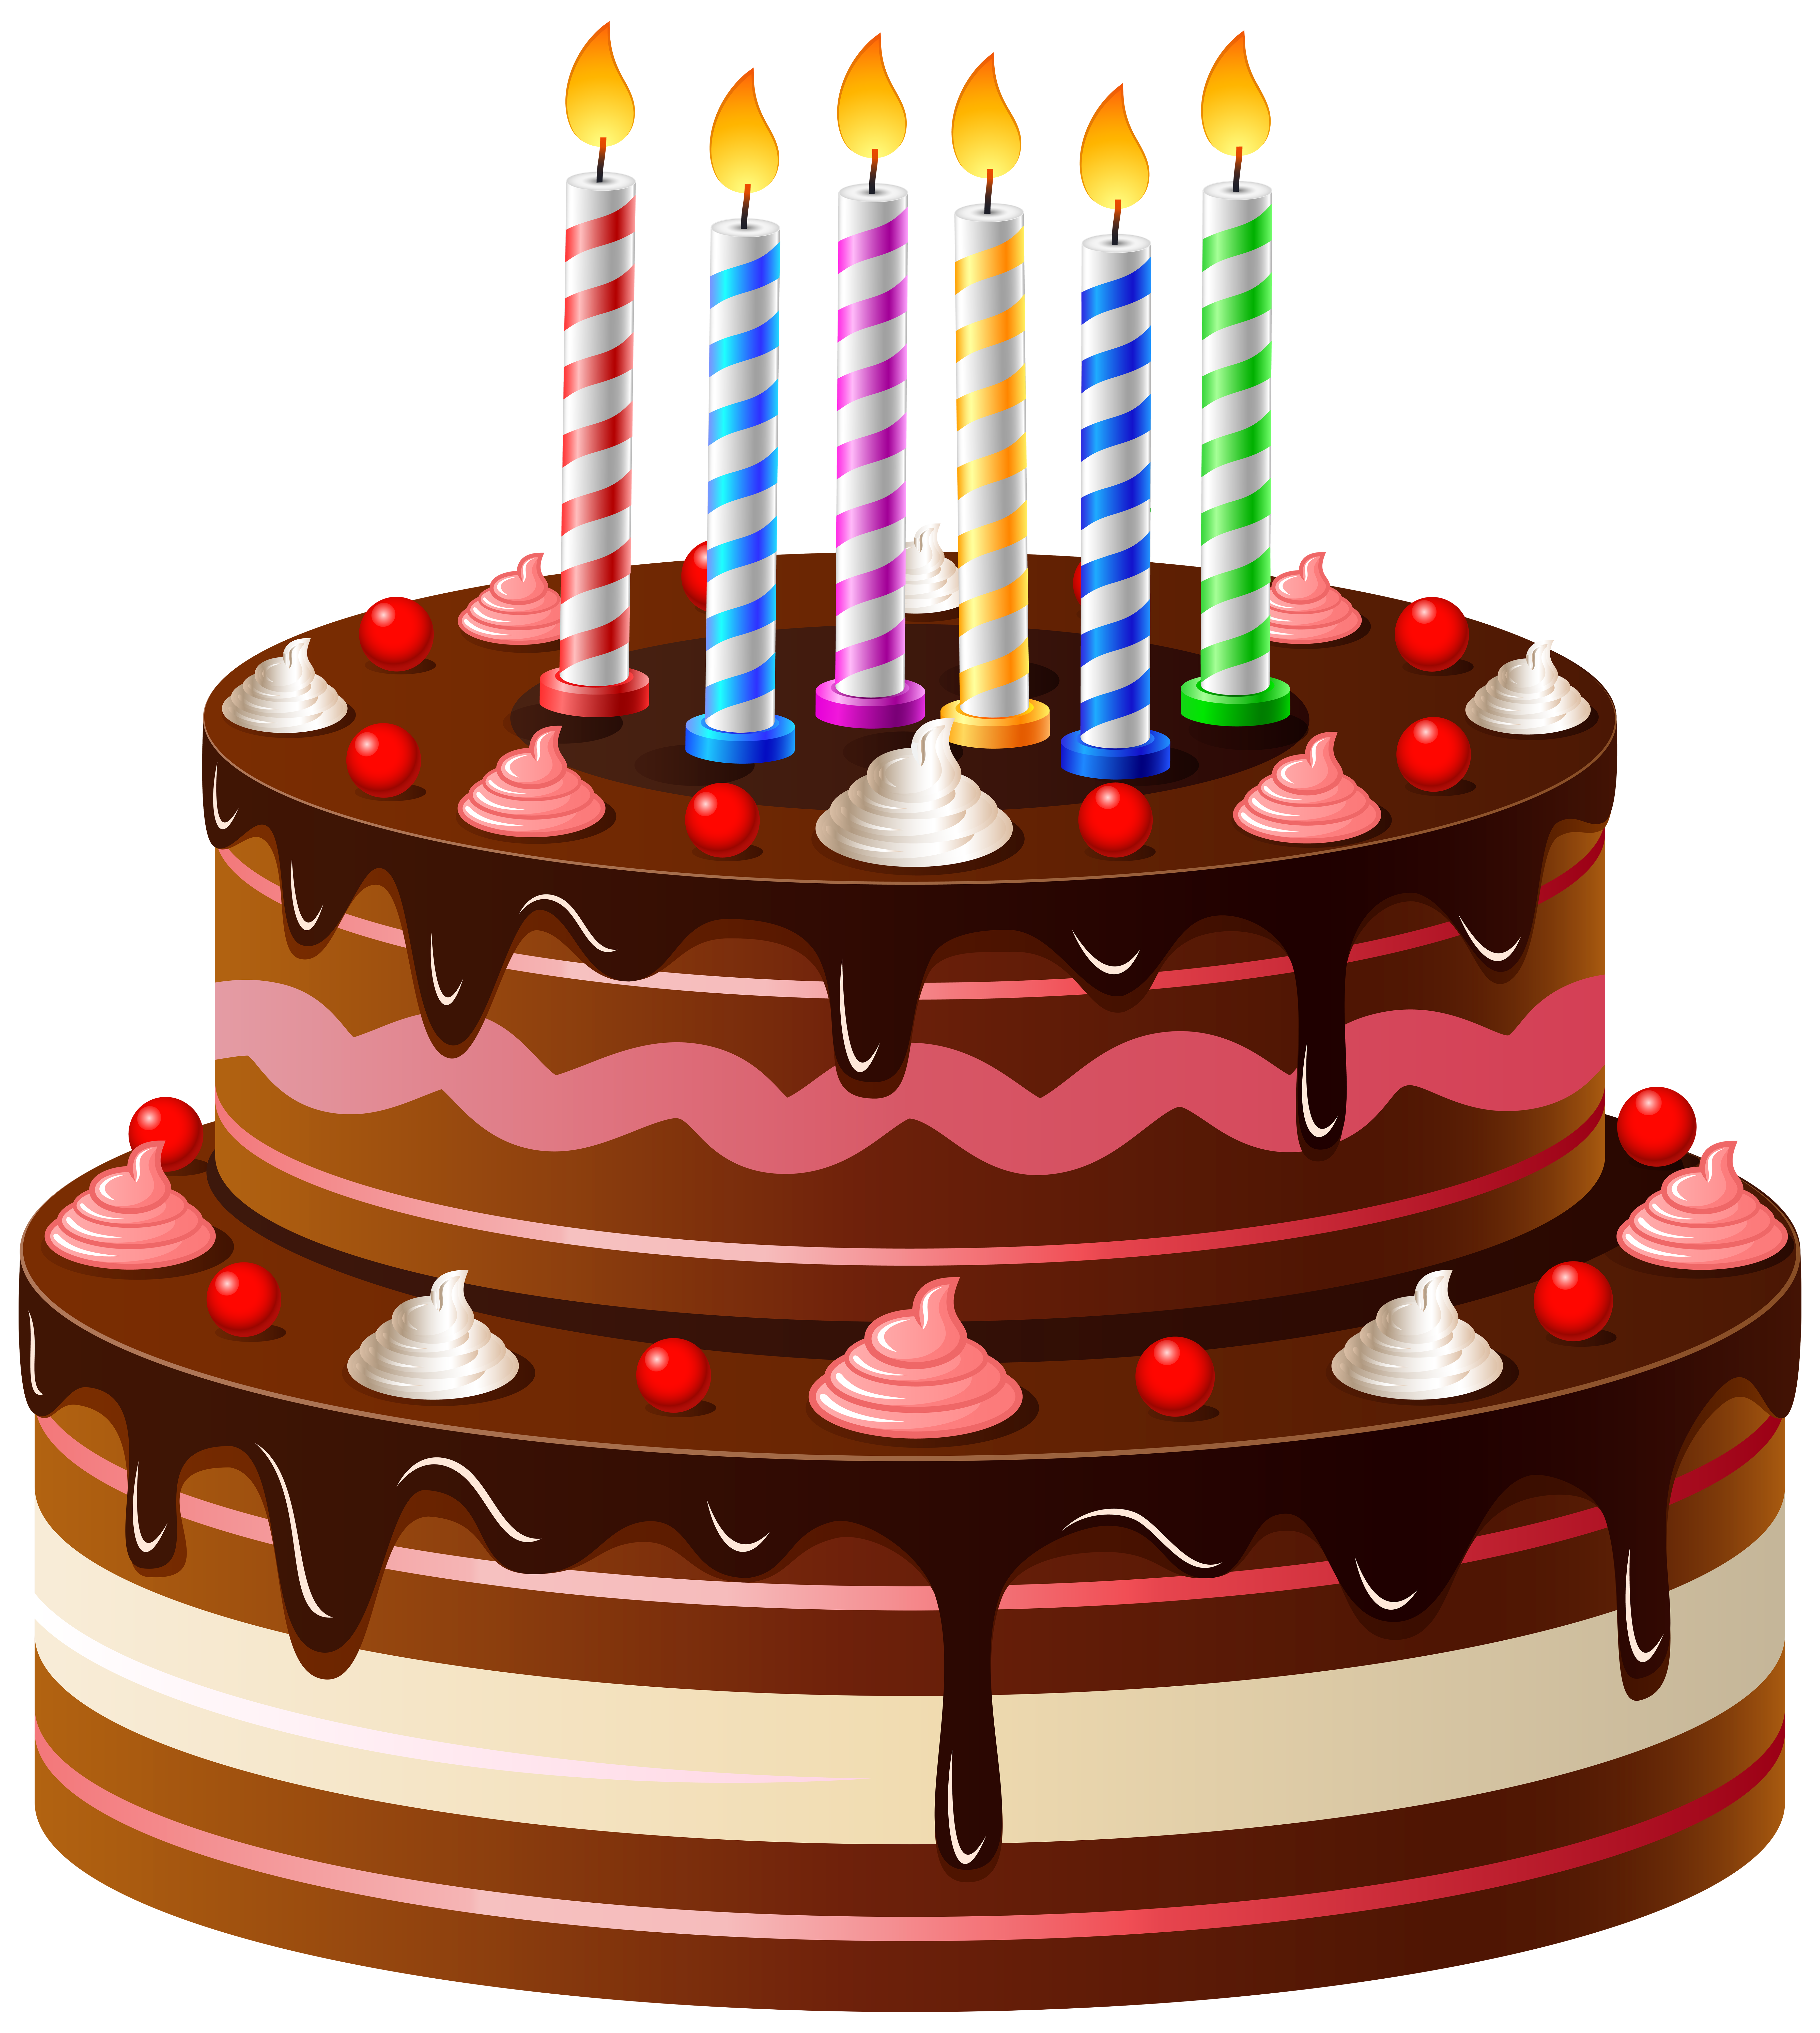 Birthday Cake Png Clip Art Gallery Yopriceville High Quality Images And Transparent Png Free Cli In 2020 Cake Clipart Cupcake Birthday Cake Colorful Birthday Cake Download all photos and use them even for commercial projects. pinterest